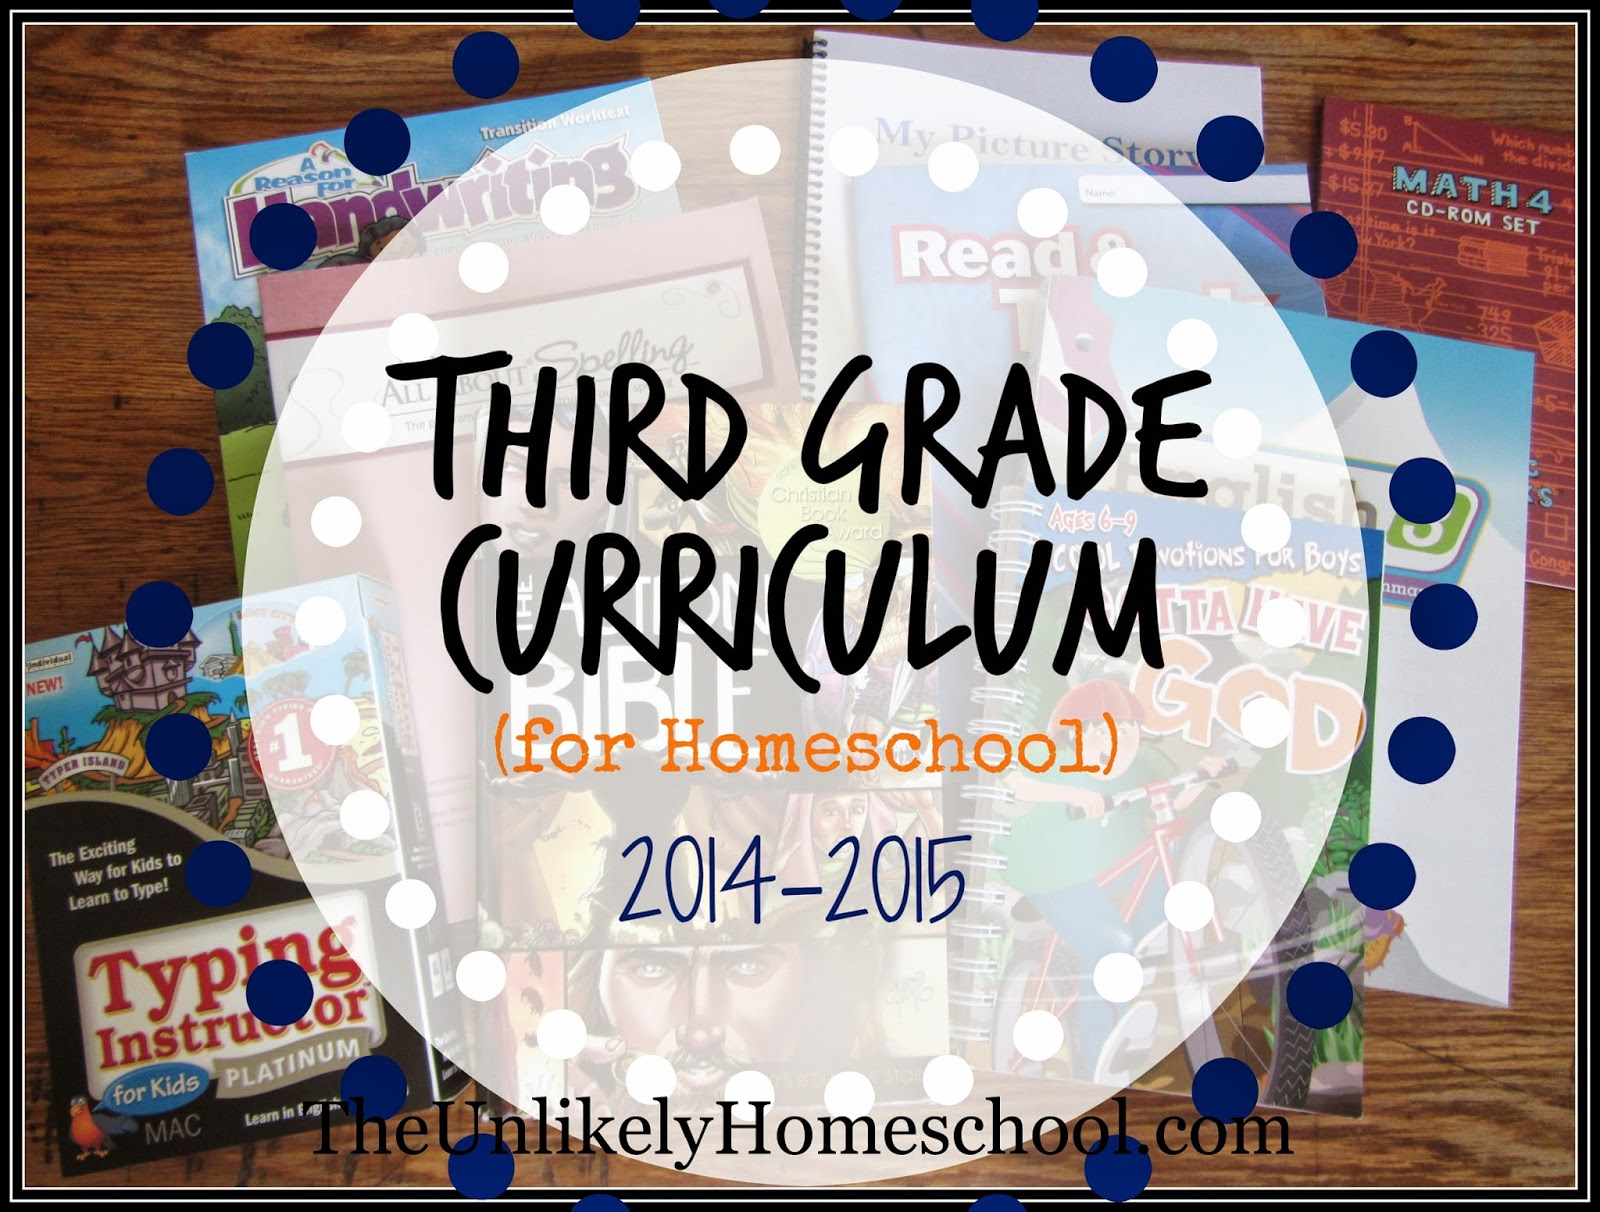 Third Grade Curriculum for Homeschool 2014-2015 {The Unlikely Homeschool}